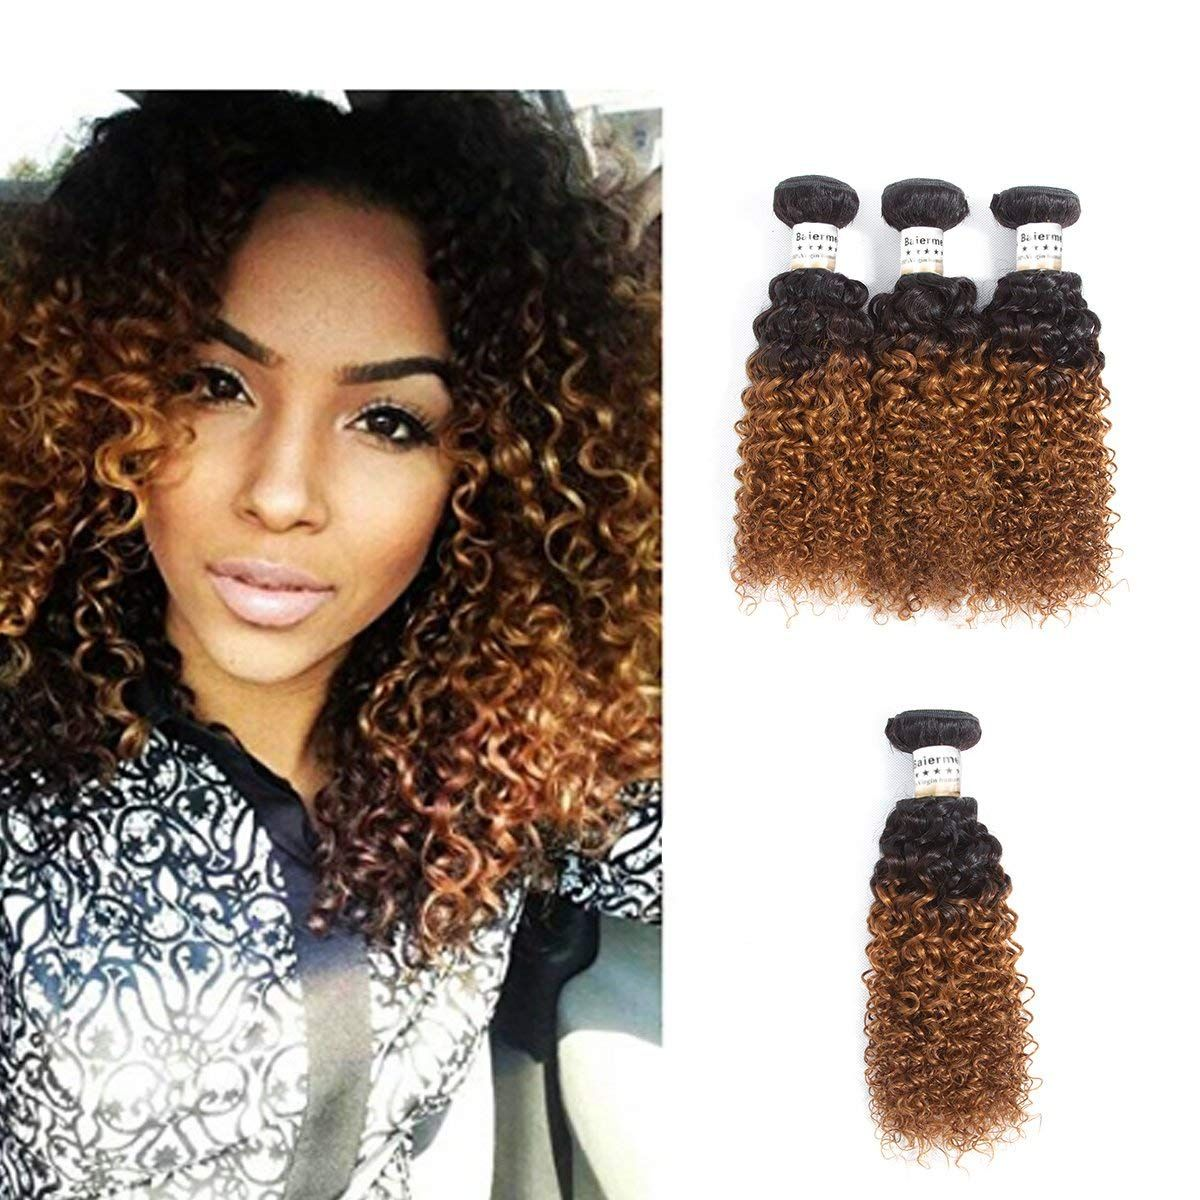 12 Inch Hair Extensions Bulk Weave Clip In Tape In Keratin Closure Wig Hair Extensions 12 Inch Hair Hair Extension Lengths